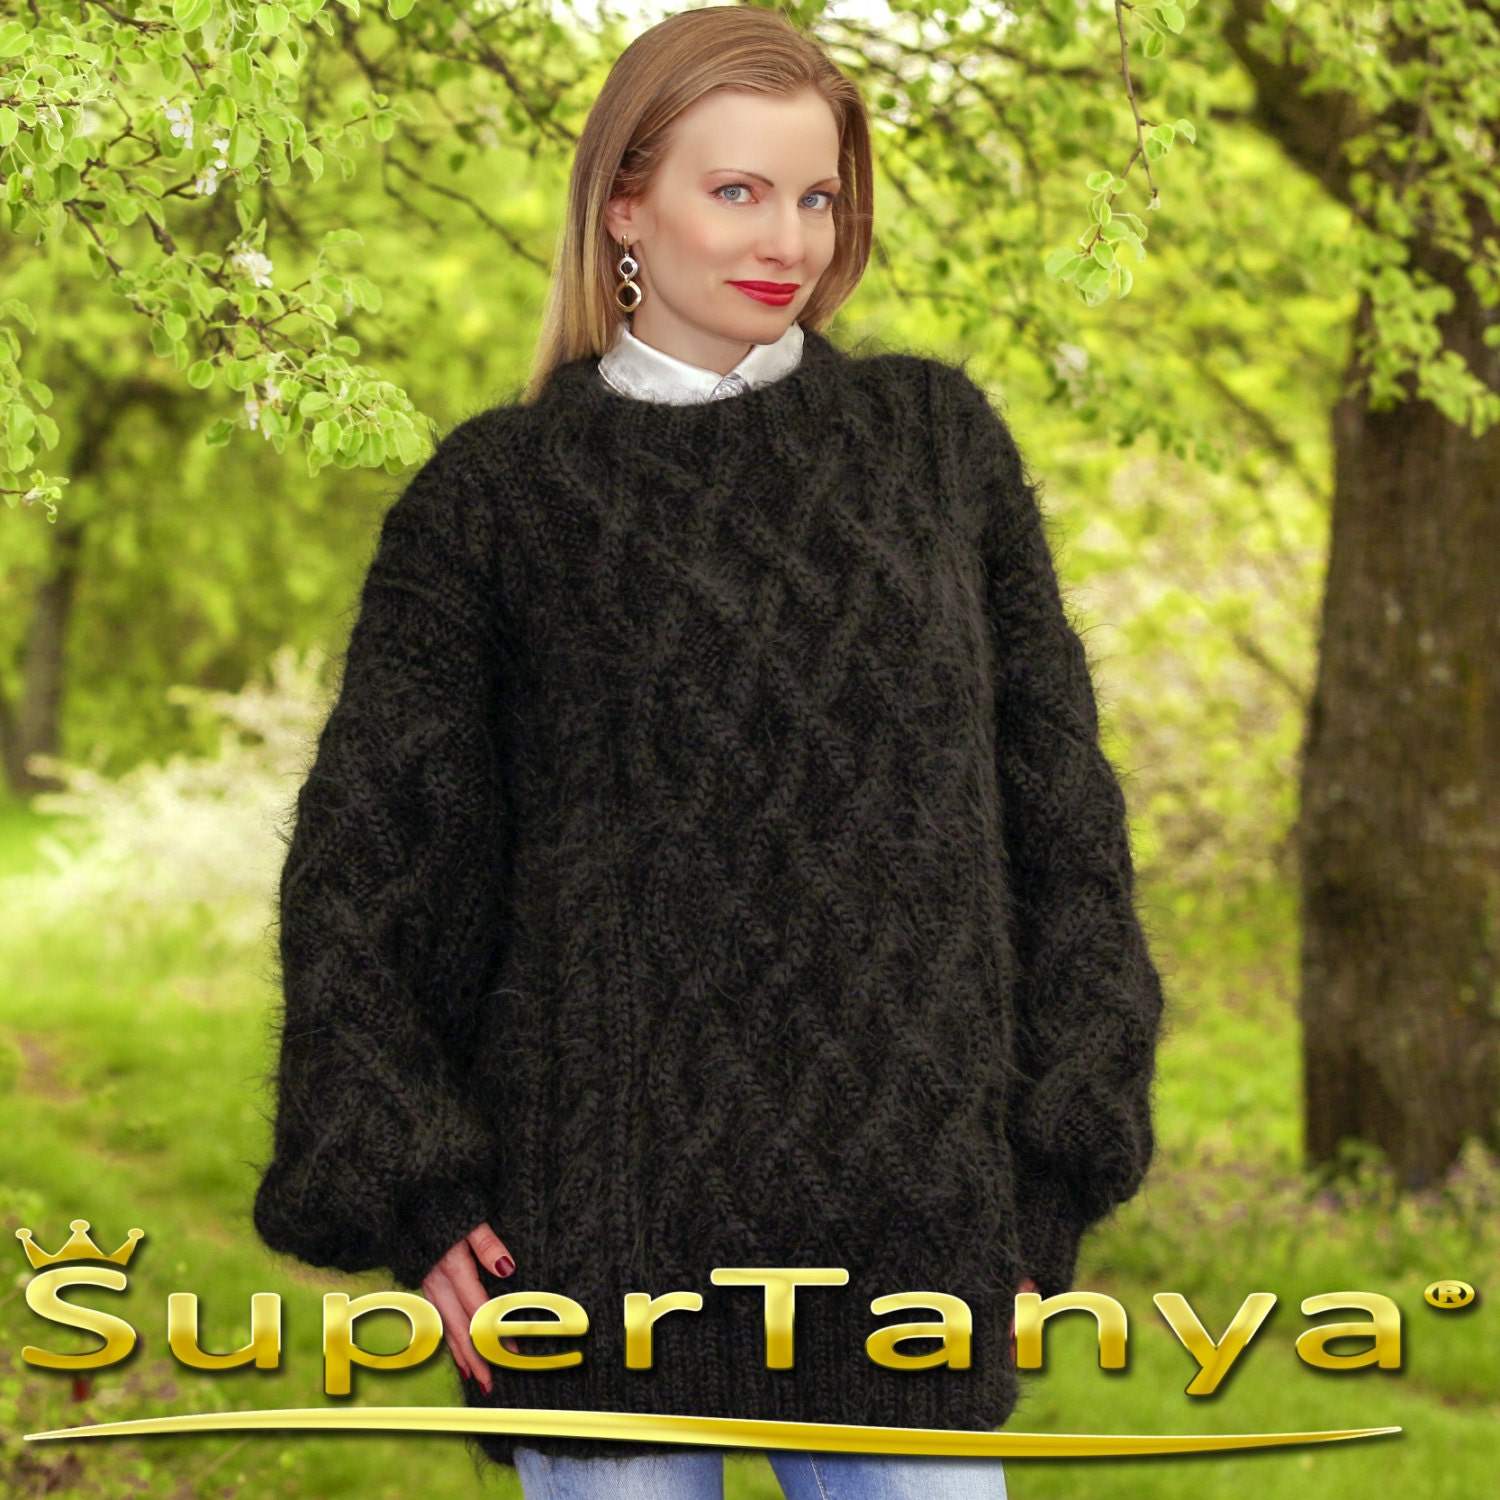 Made to order Aran sweater in black by SuperTanya sweaters